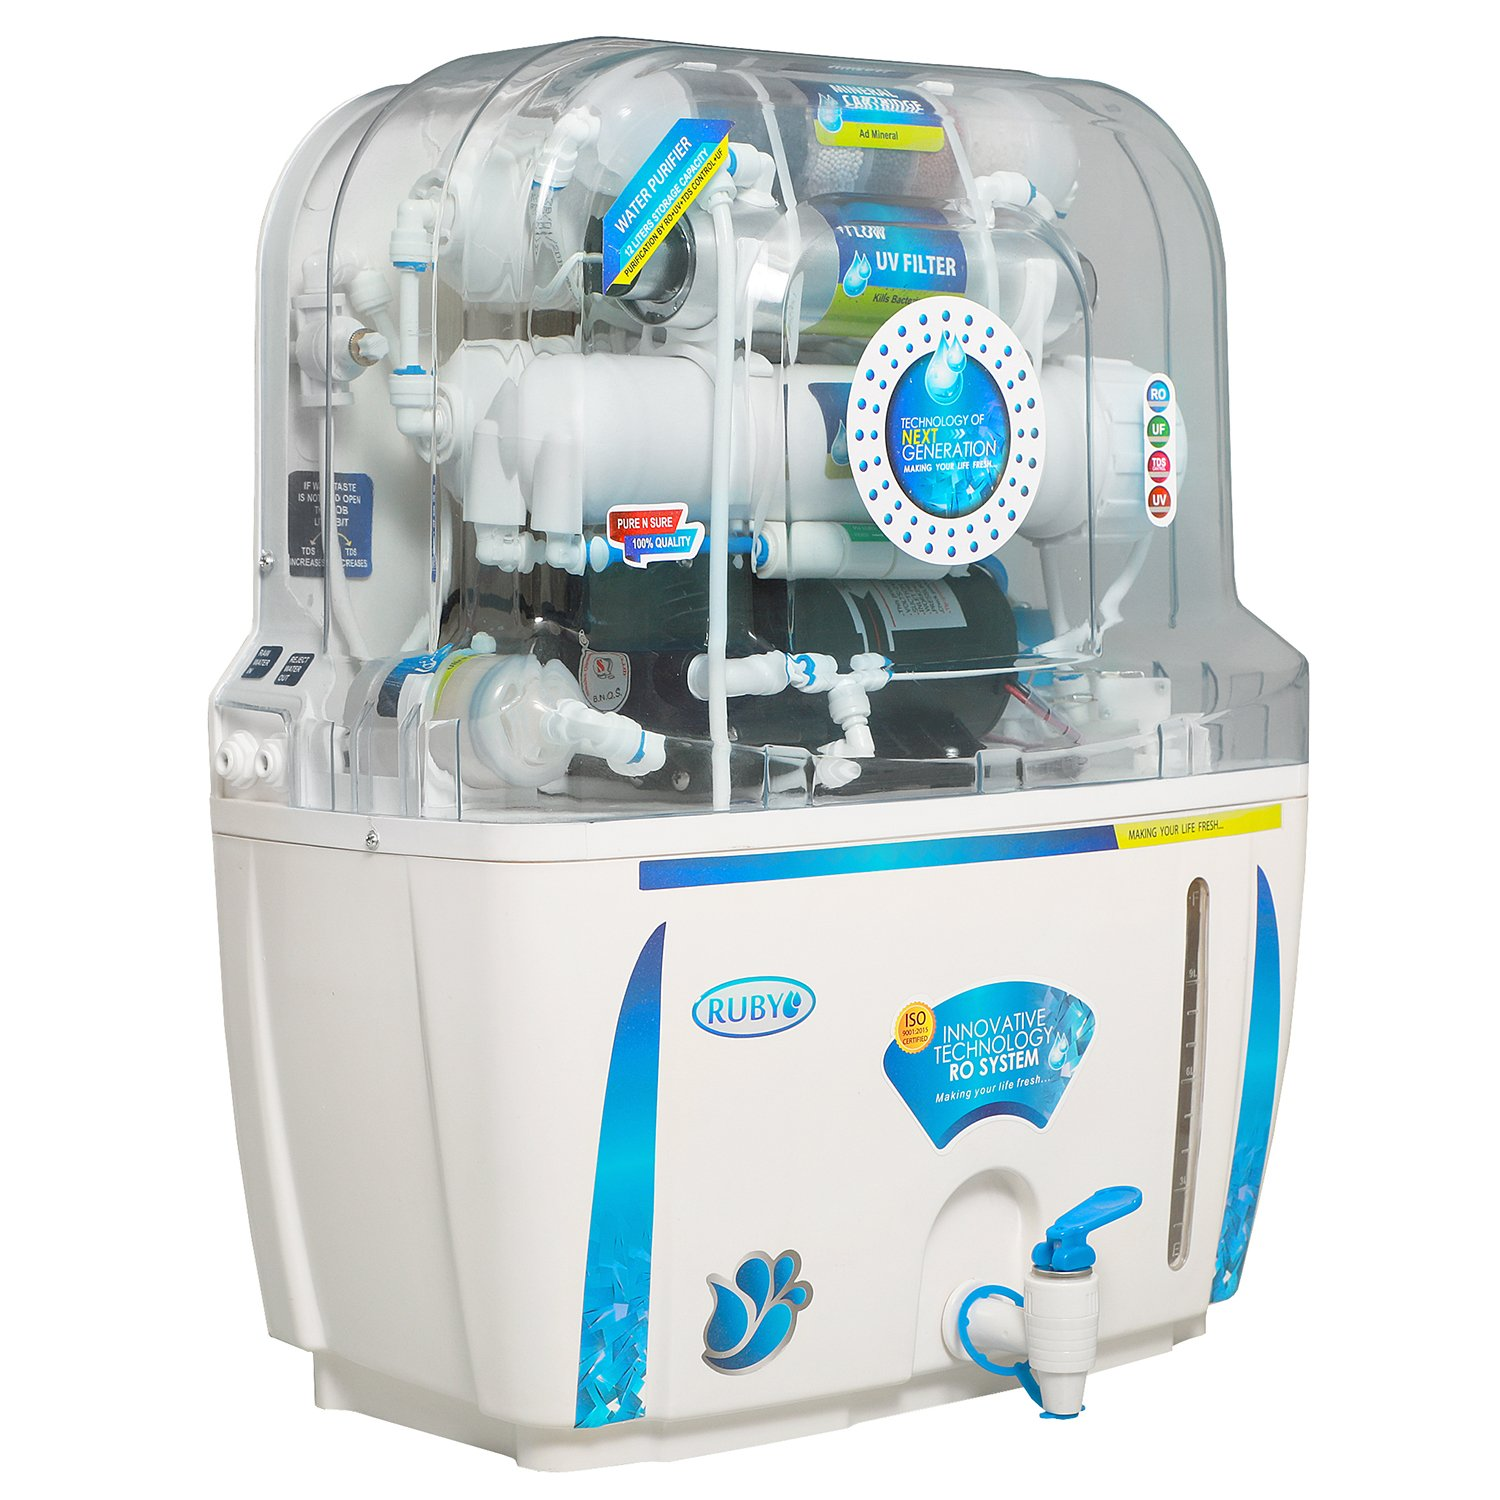 Ruby Ro+Uv+Tds Controller Water Purifier,White & Blue: Amazon.in ...